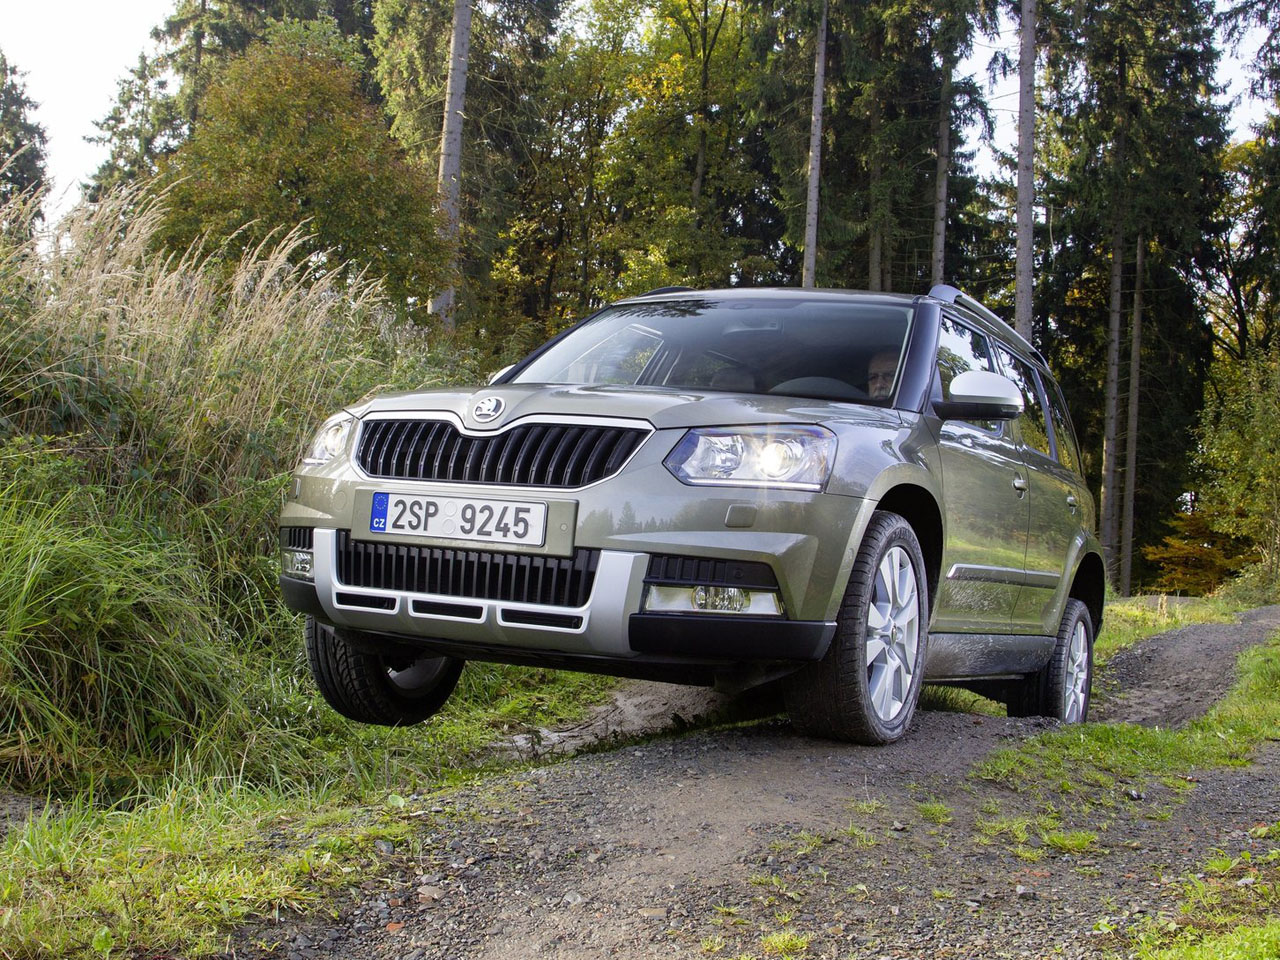 skoda yeti facelift photo gallery car gallery suv crossovers autocar india. Black Bedroom Furniture Sets. Home Design Ideas